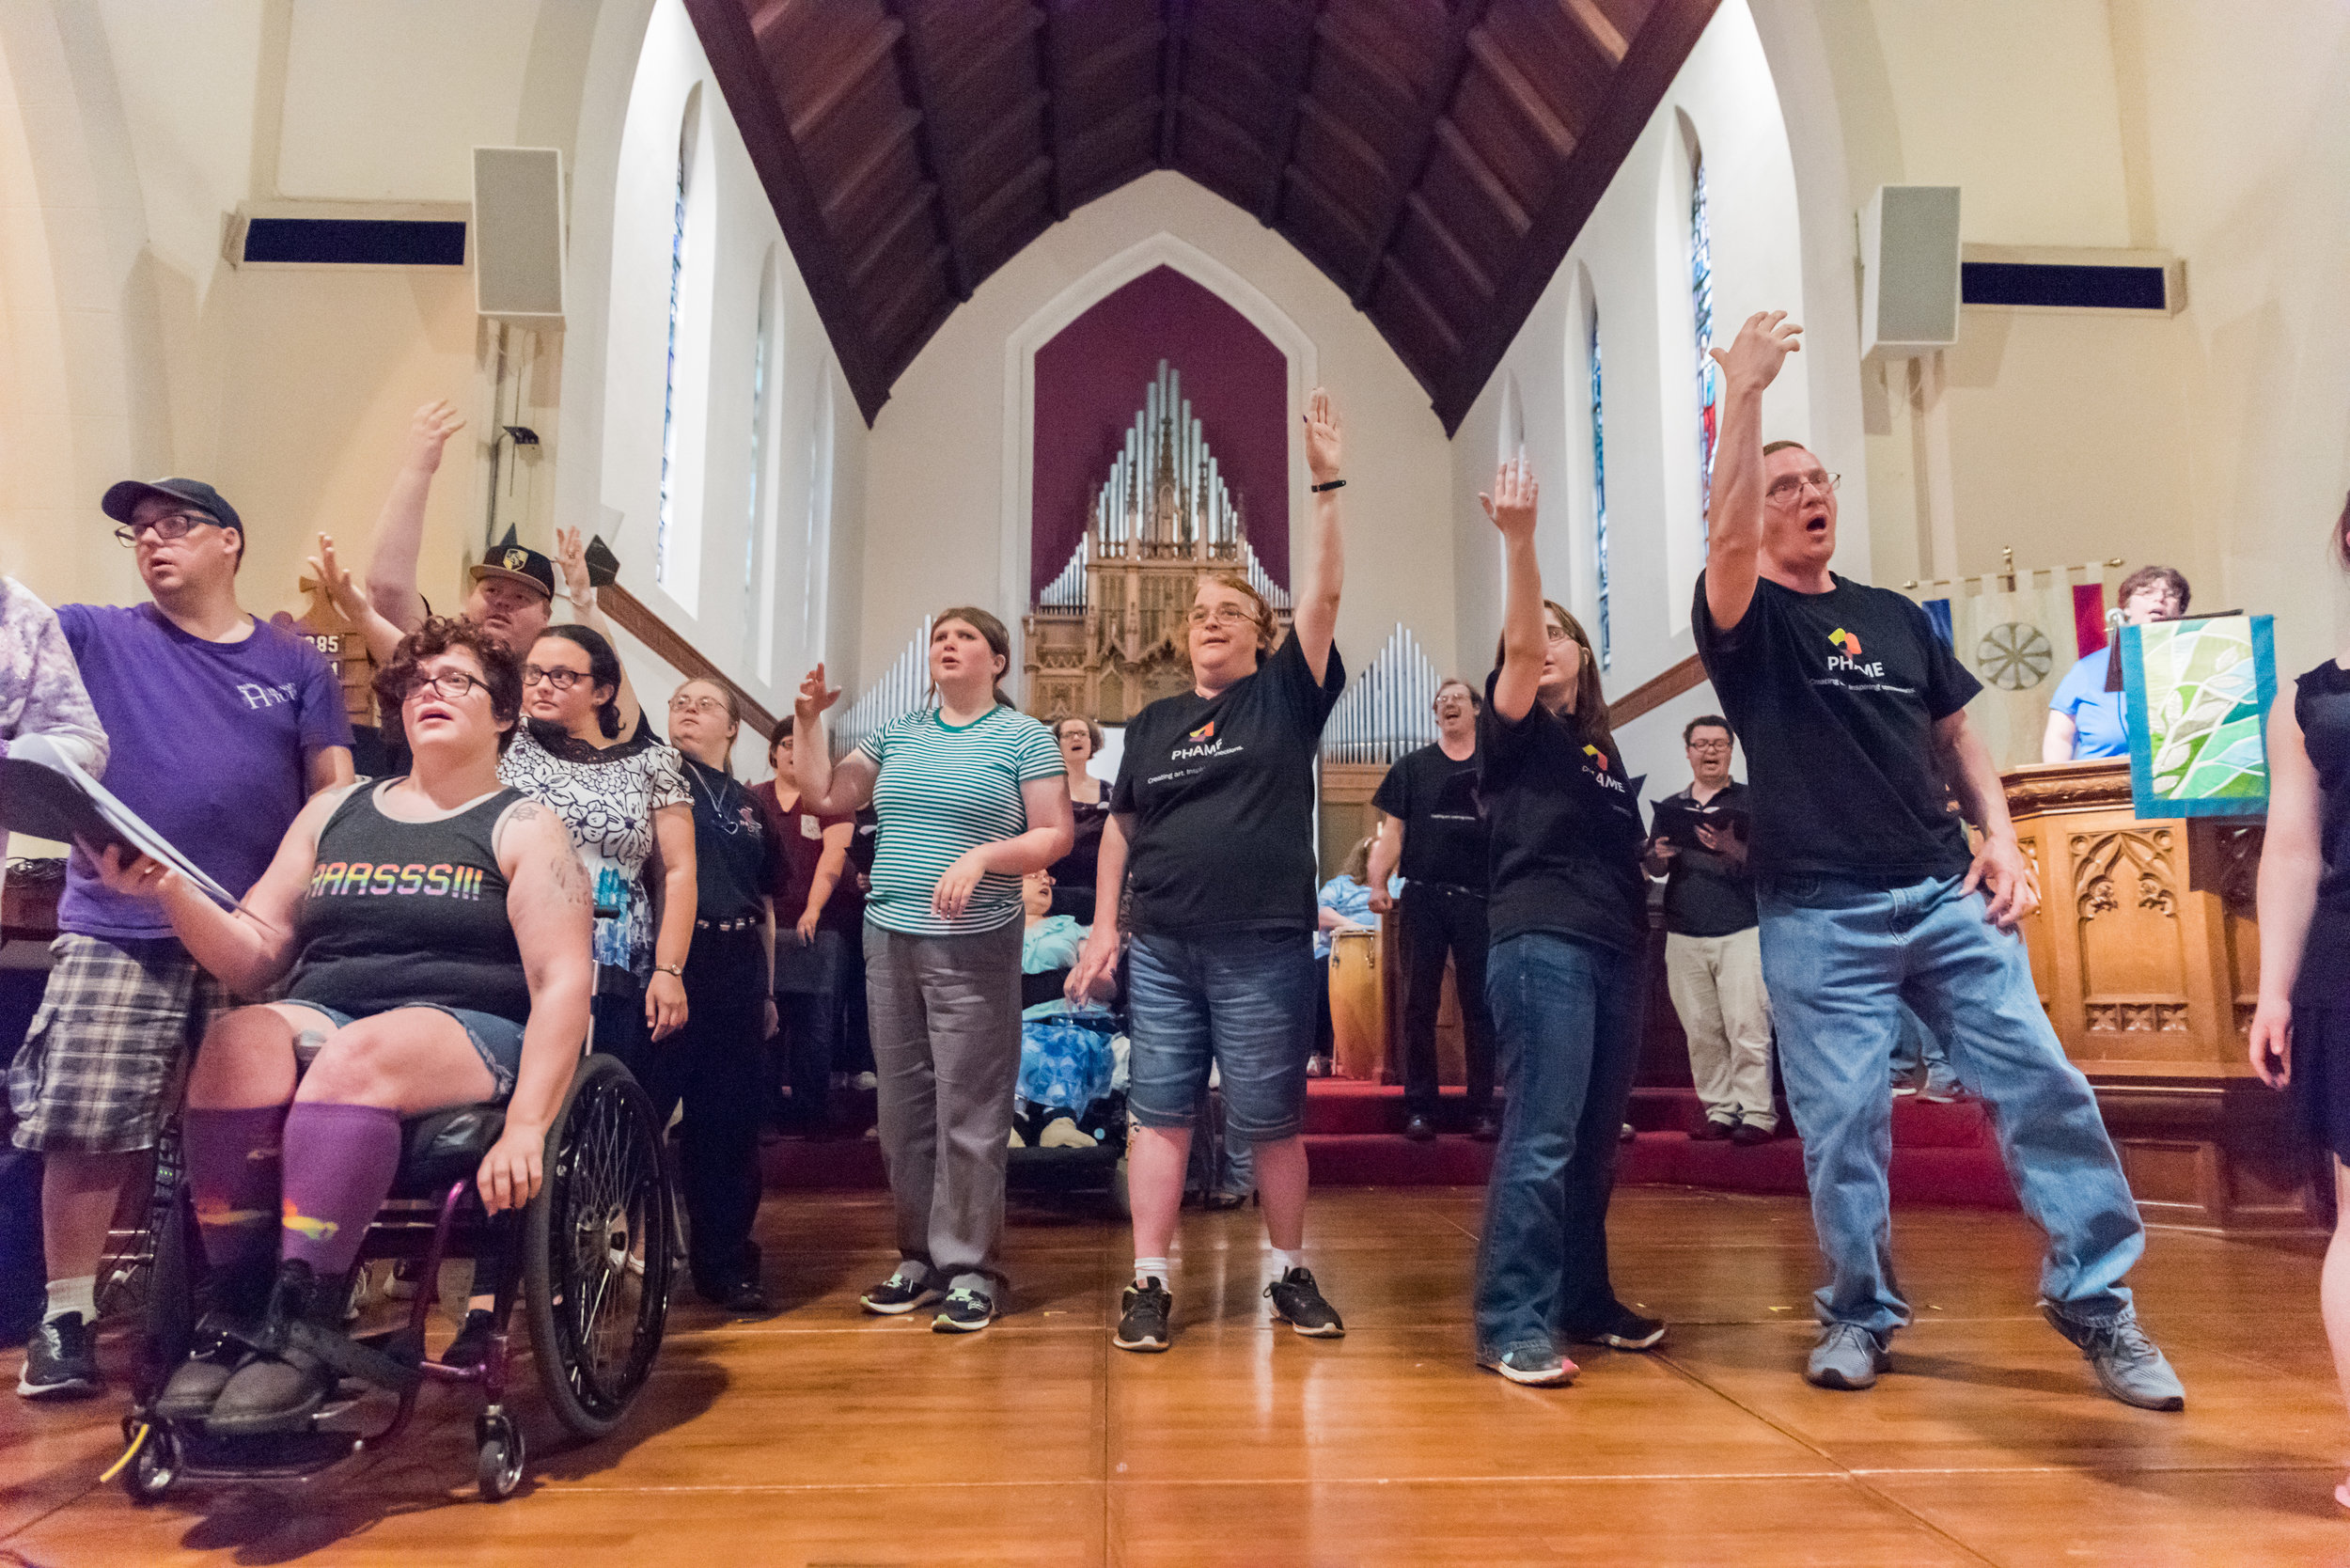 Group of people stand in large room with their arms raised, one person is in a wheelchair